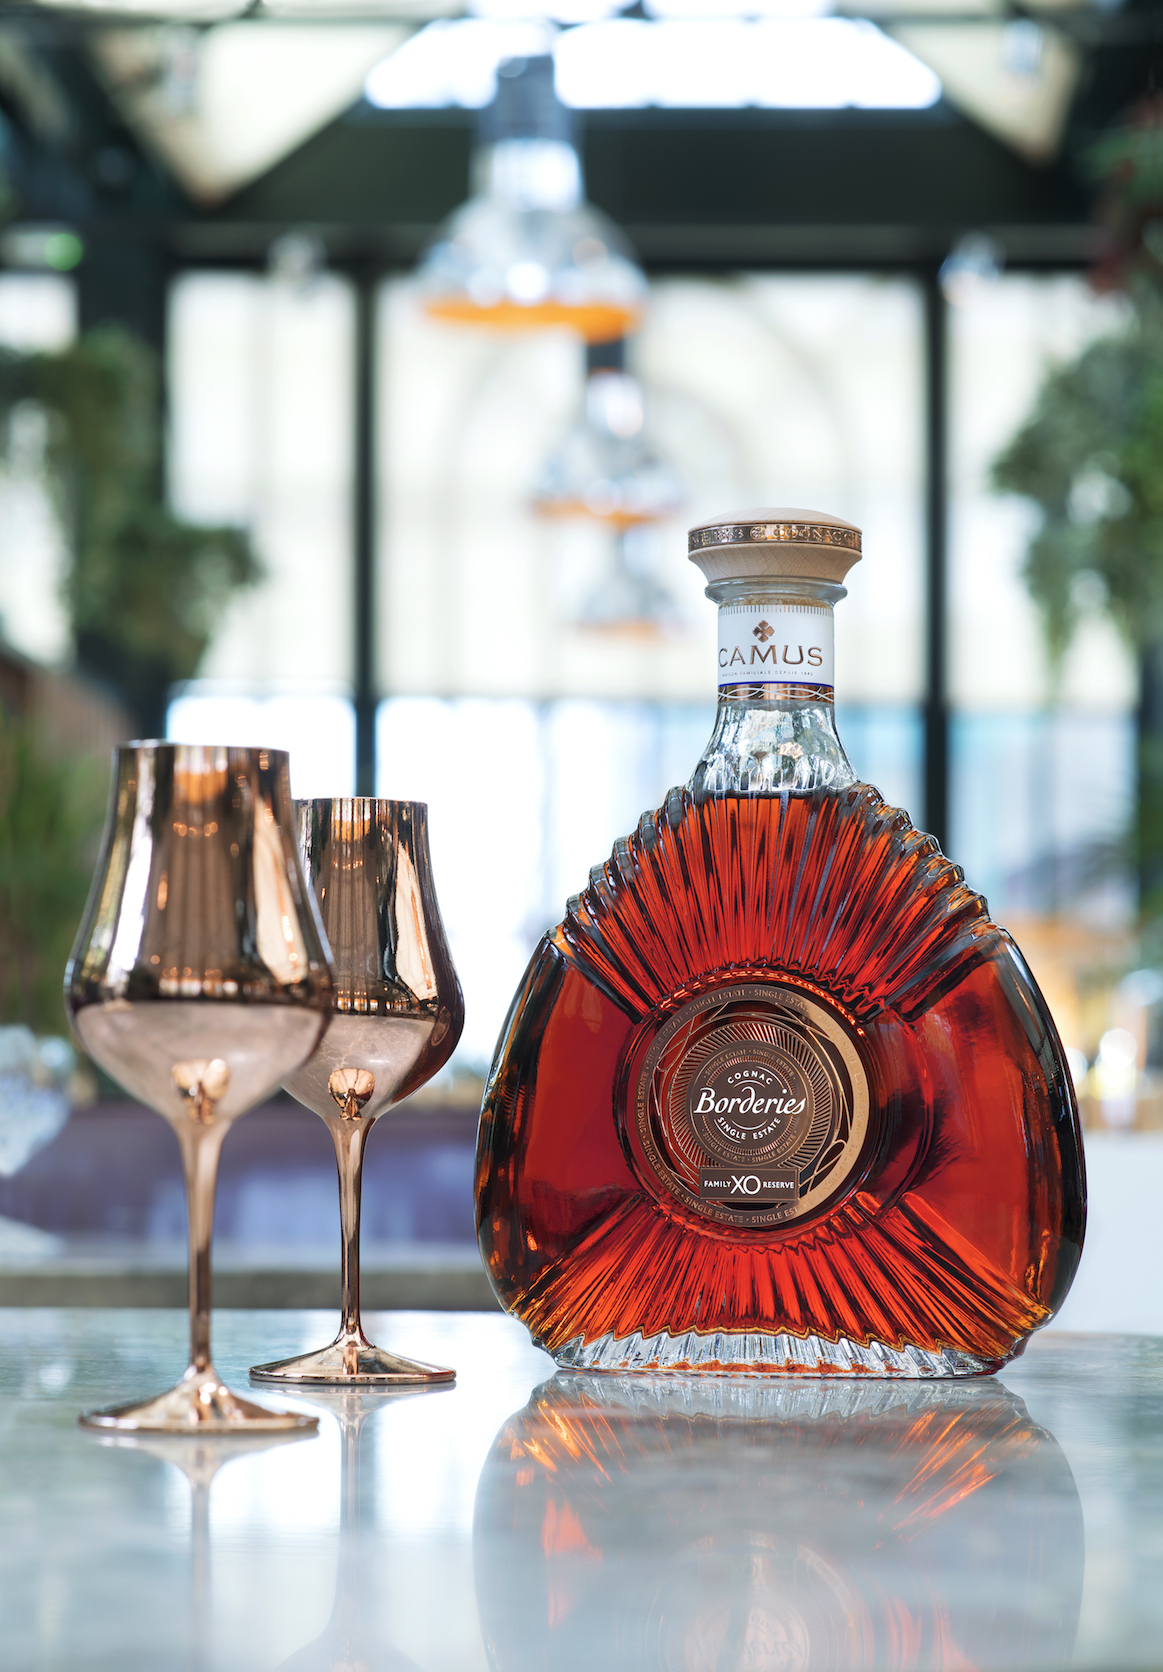 Cognac and Food Pairings? It's a Thing.